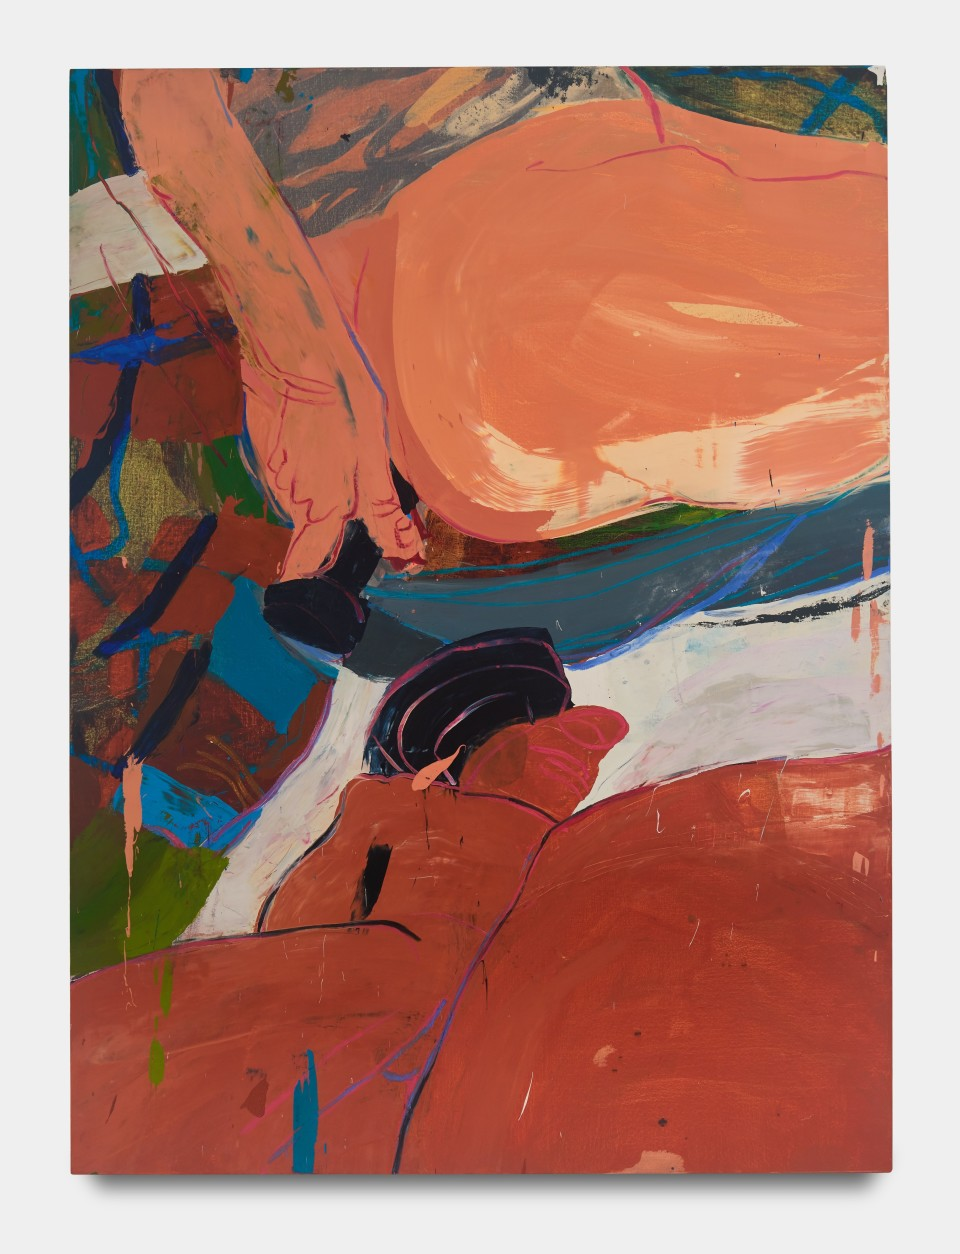 Image: Sarah Faux  Excuse me if I may, 2020  signed and dated verso  oil on canvas  62 x 46 inches